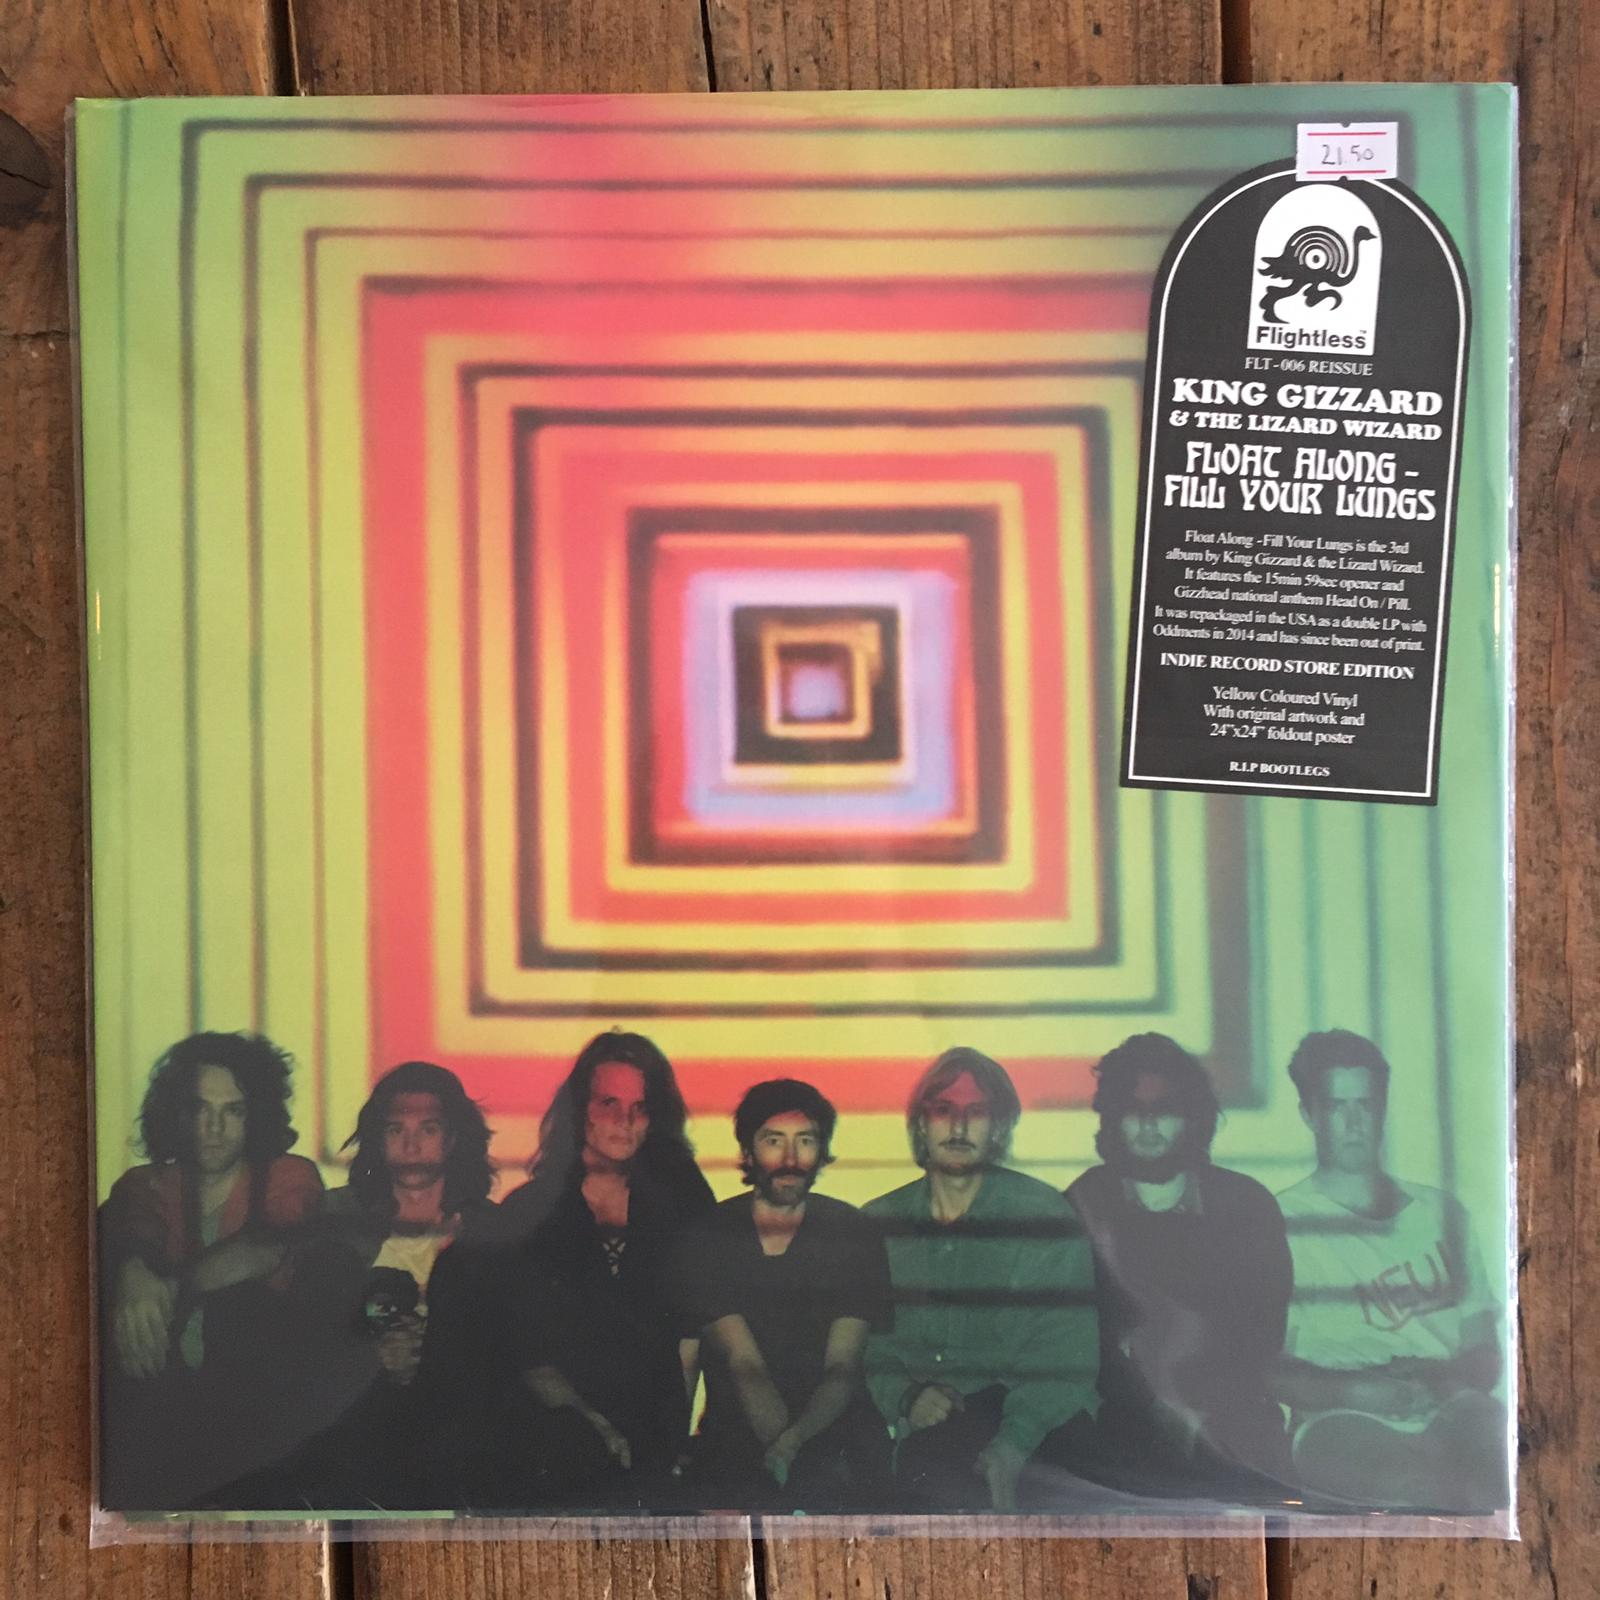 King Gizzard & The Lizard Wizard - Float Along/Fill Your Lungs